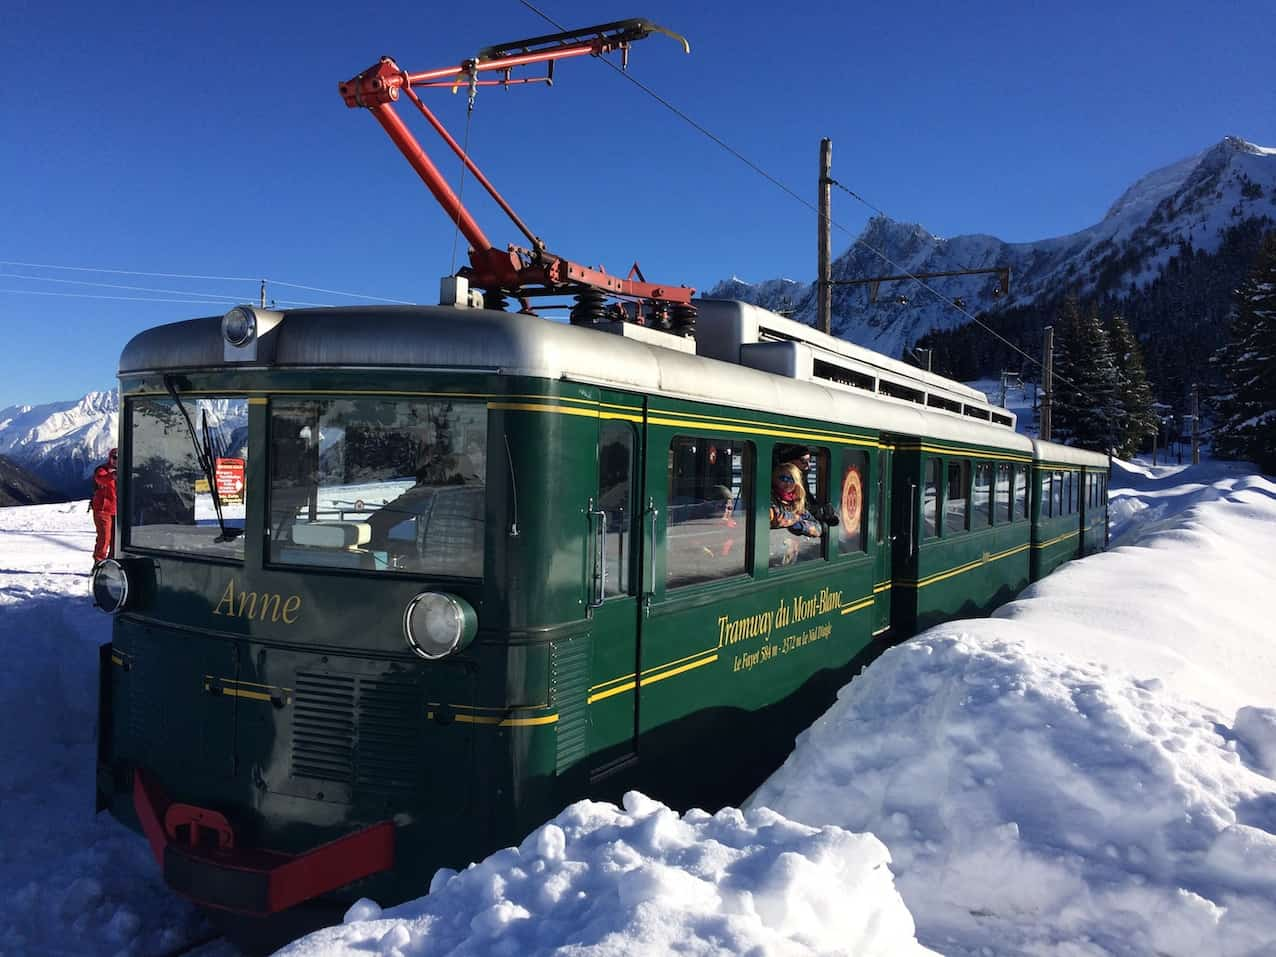 Mont Blanc Tramway Chamonix winter activities